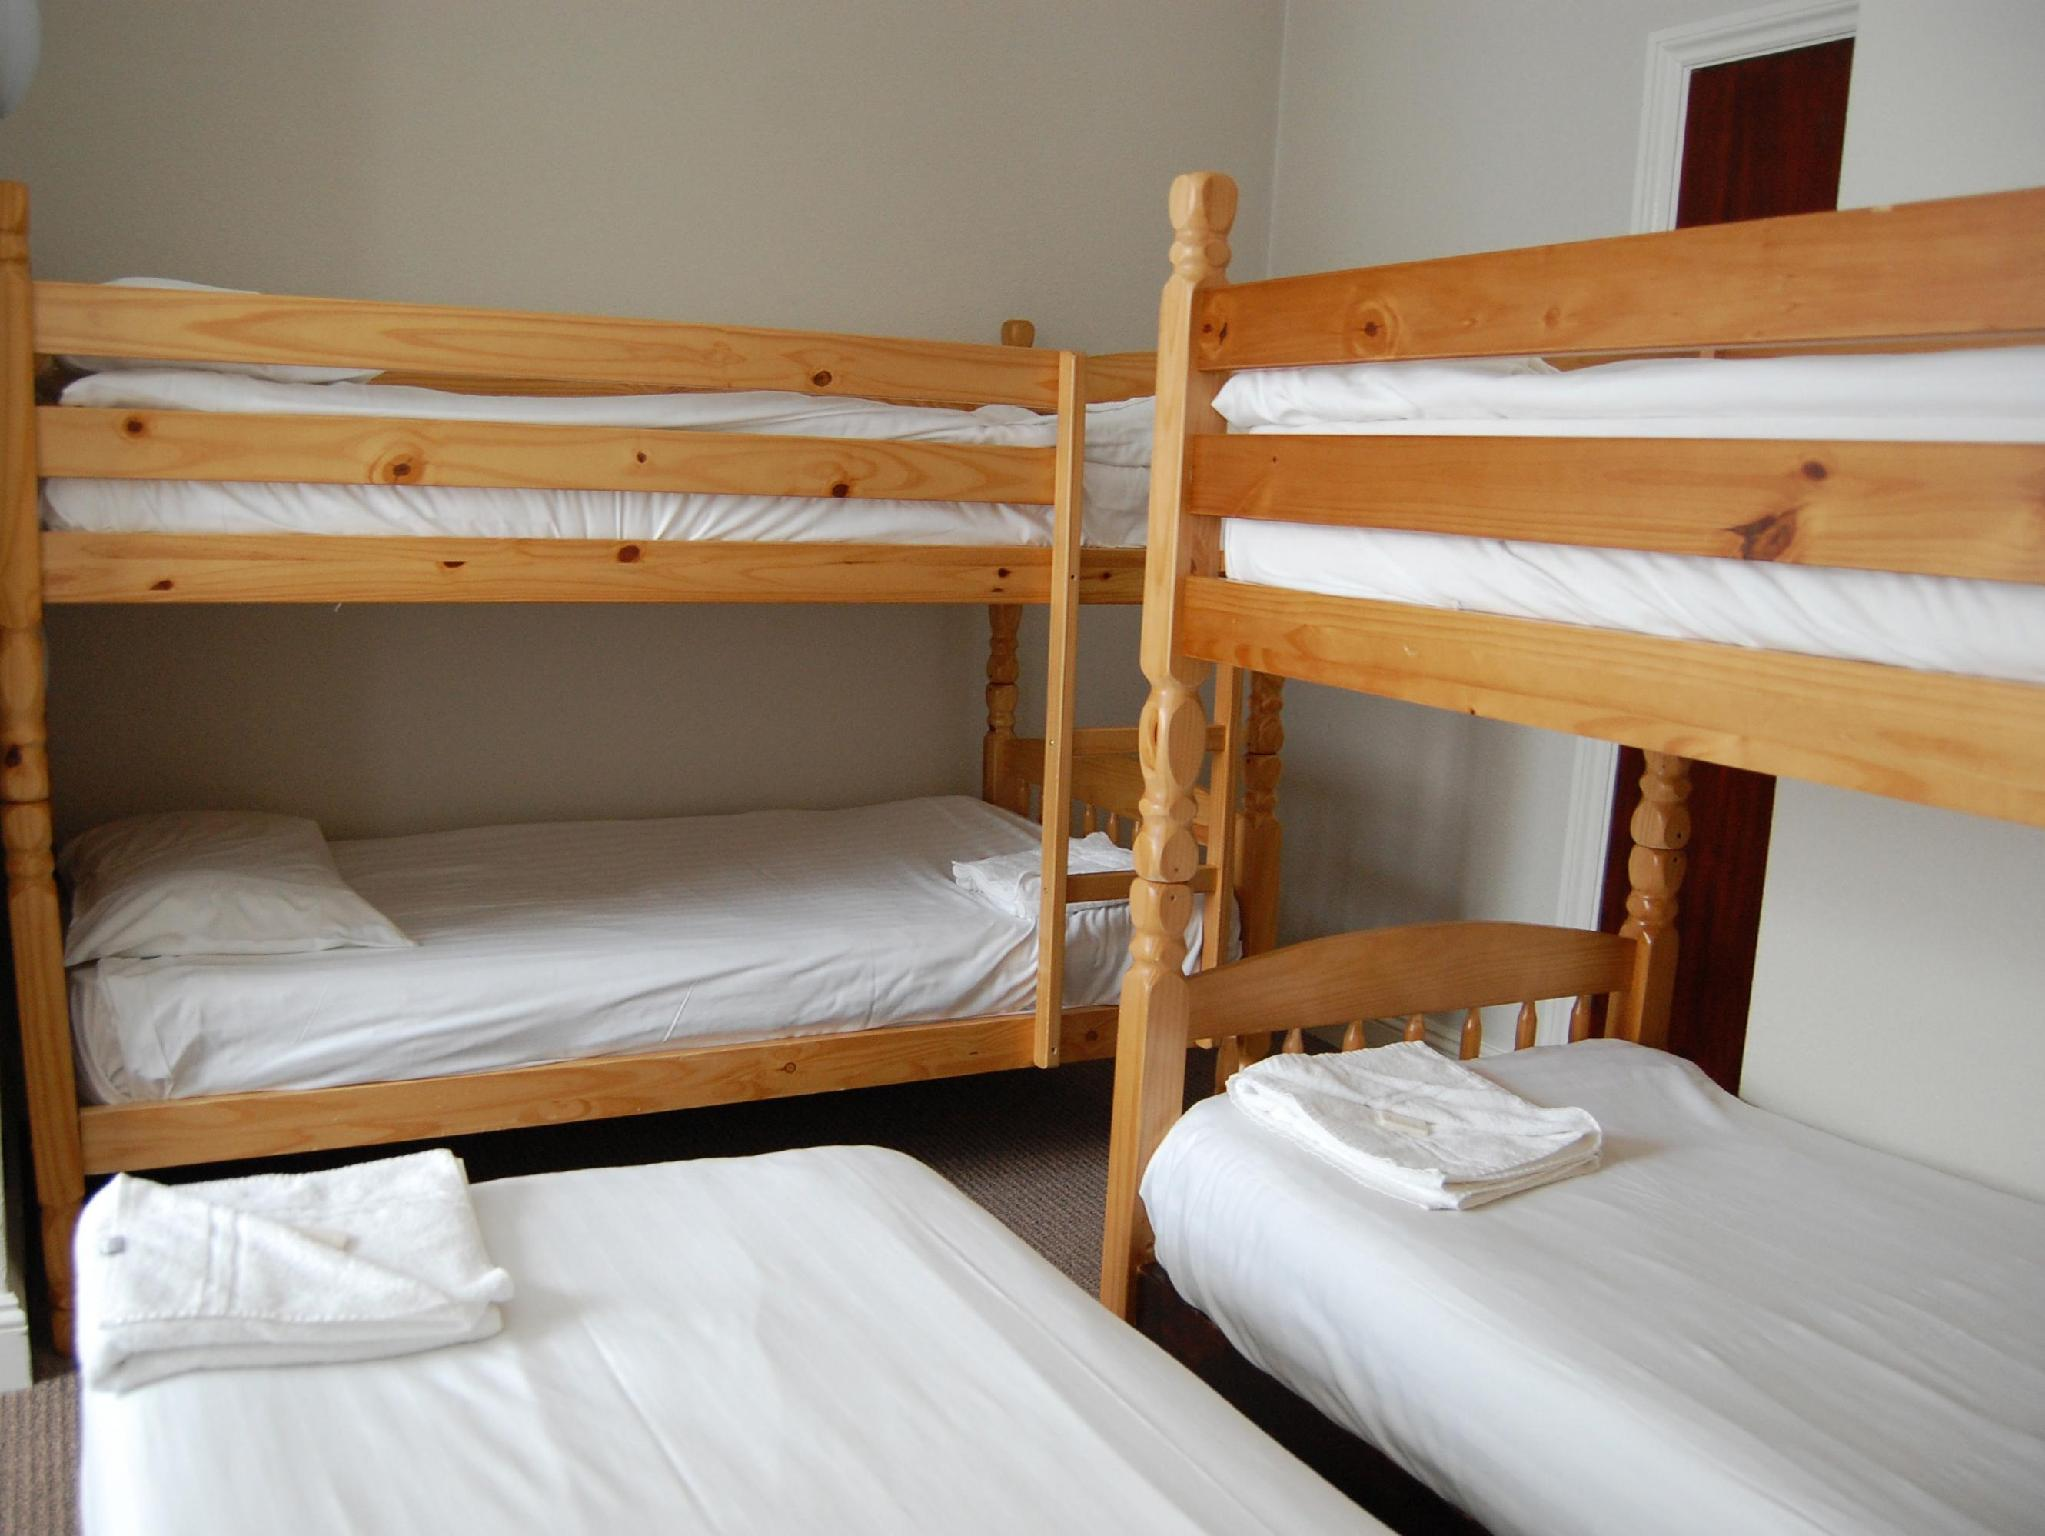 viie voodiga tuba (Five Bedded Room)